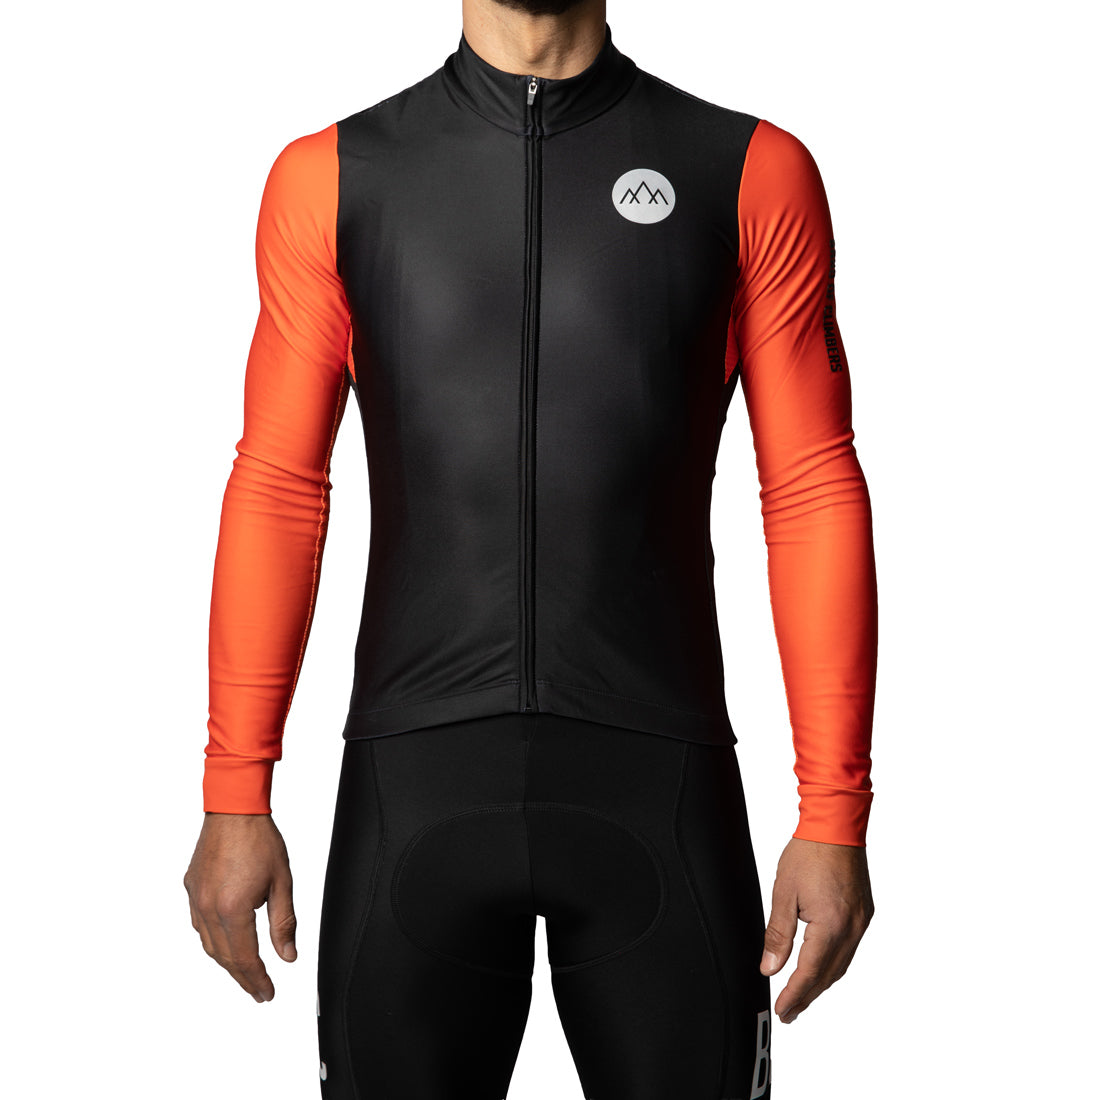 Pro Seasons Jersey - Black/Orange